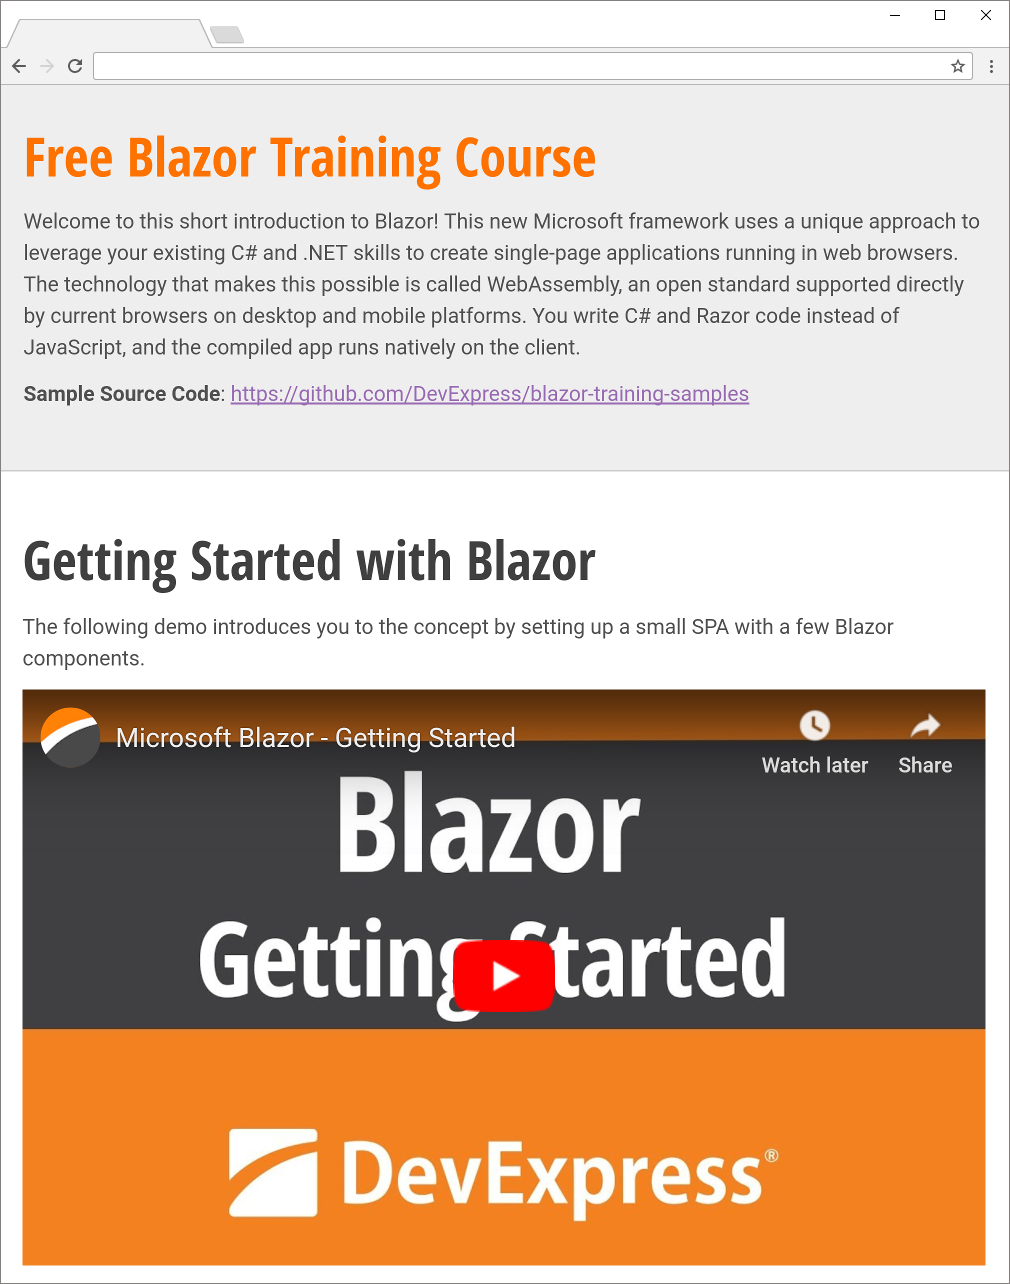 Free DevExpress Training Course for Microsoft Blazor